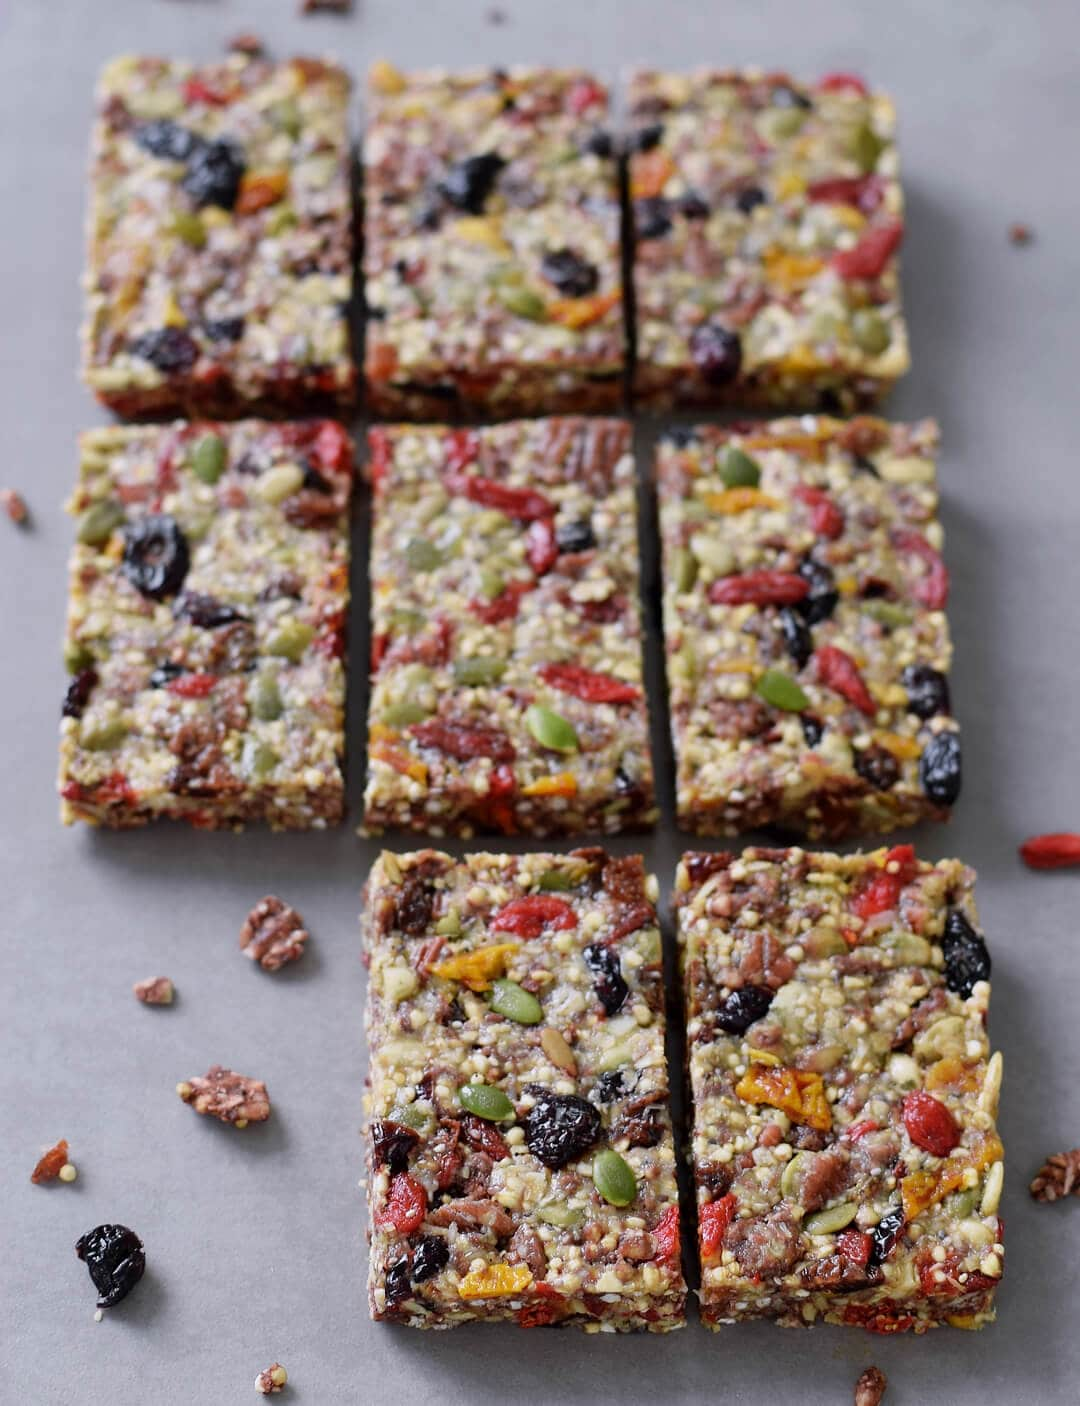 Healthy granola bars recipe. These muesli bars are chewy, soft and the perfect snack. My recipe is (raw) vegan, gluten free, refined sugar-free, healthy and easy to make